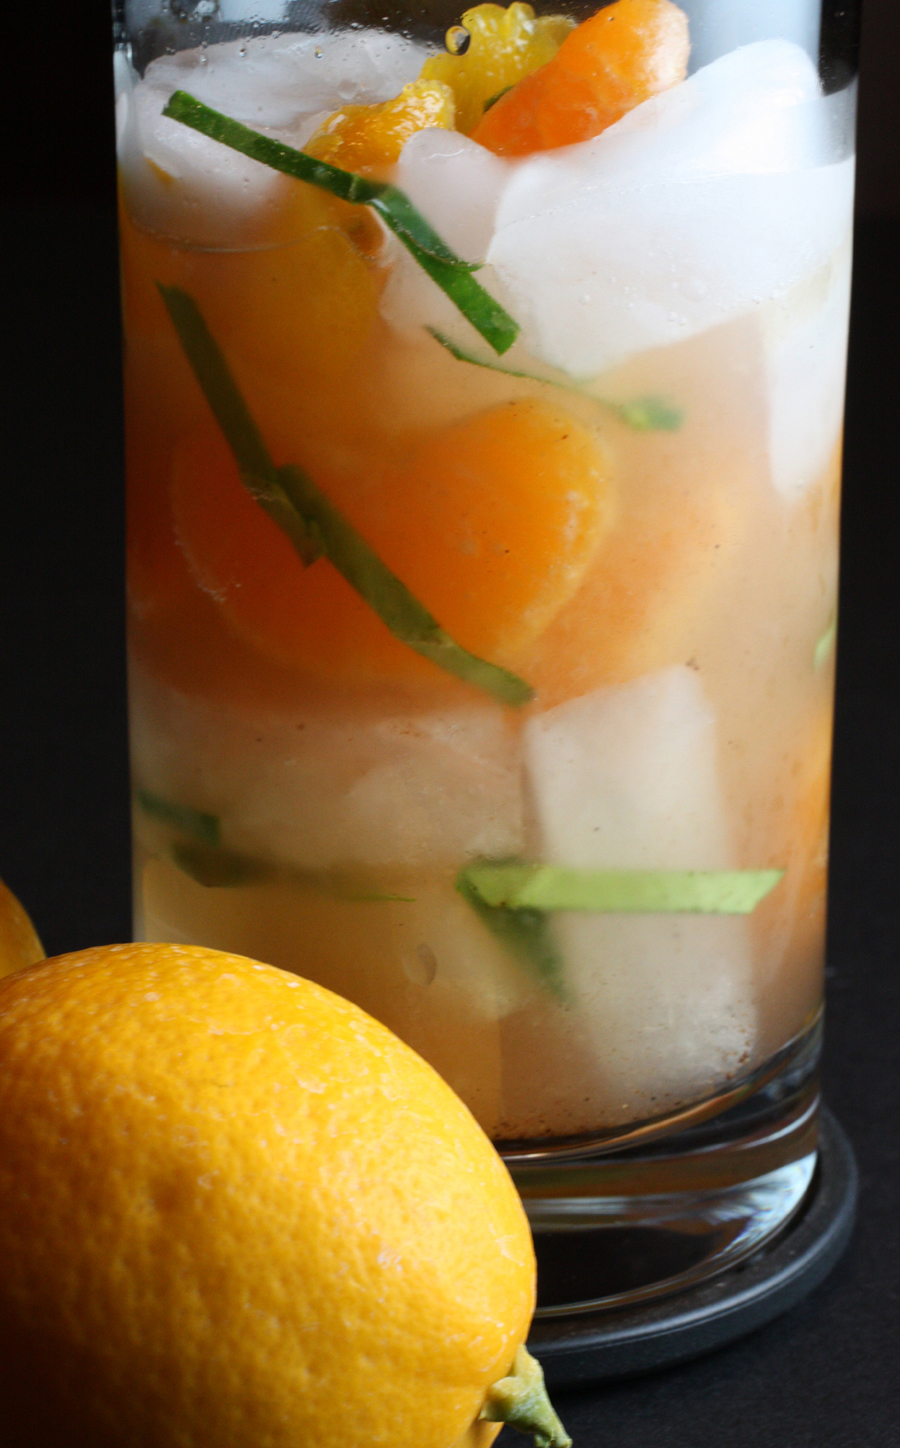 The citrus-infused Waverly Place Echo cocktail.